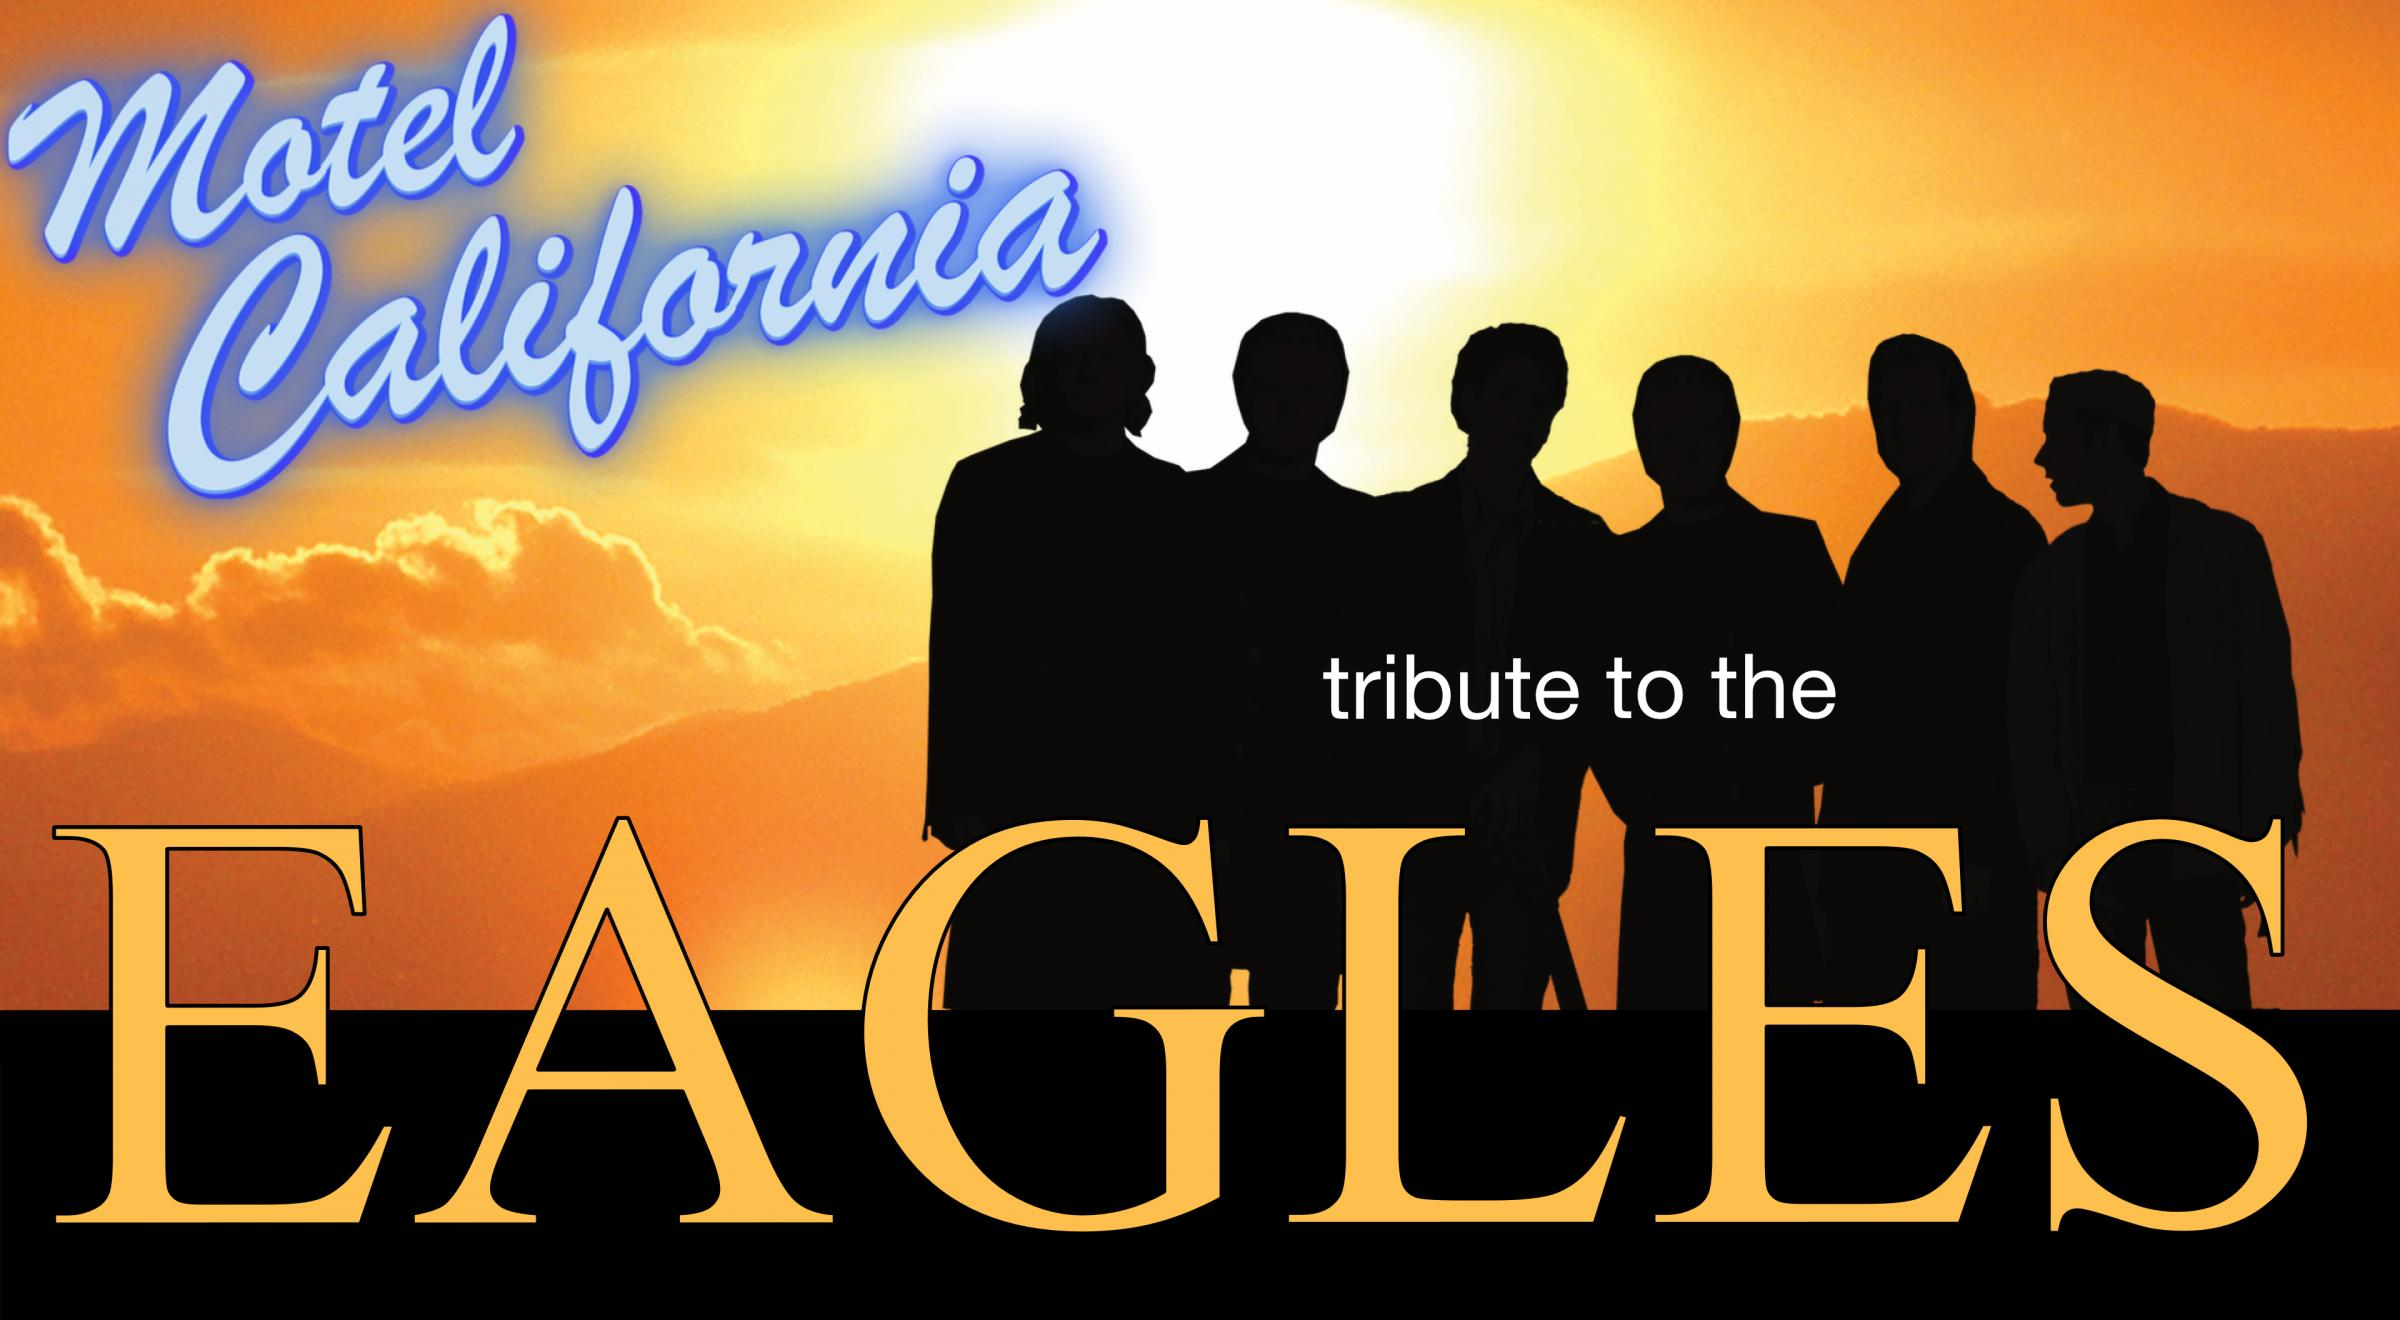 A Tribute To The Eagles 2018 Tour: Motel California